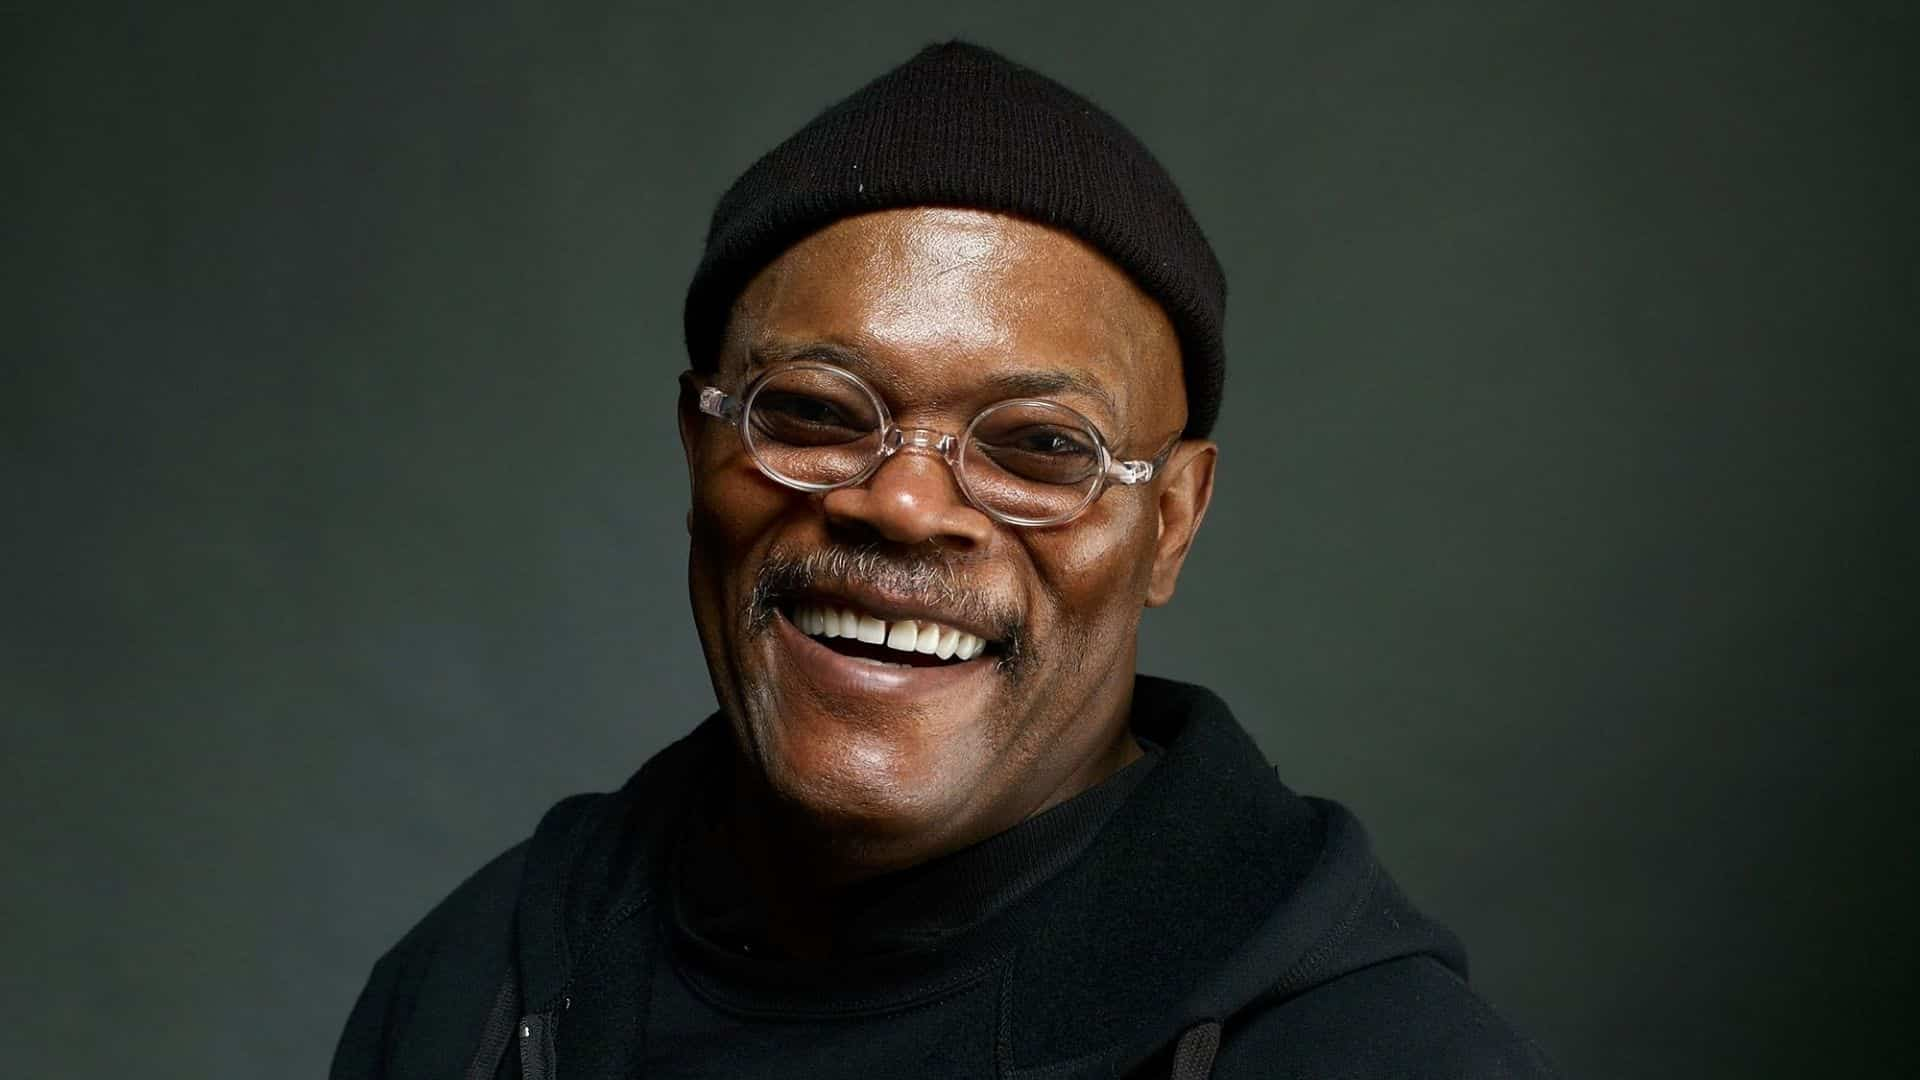 Top 10 Best Coolest Movies Samuel L Jackson of all time